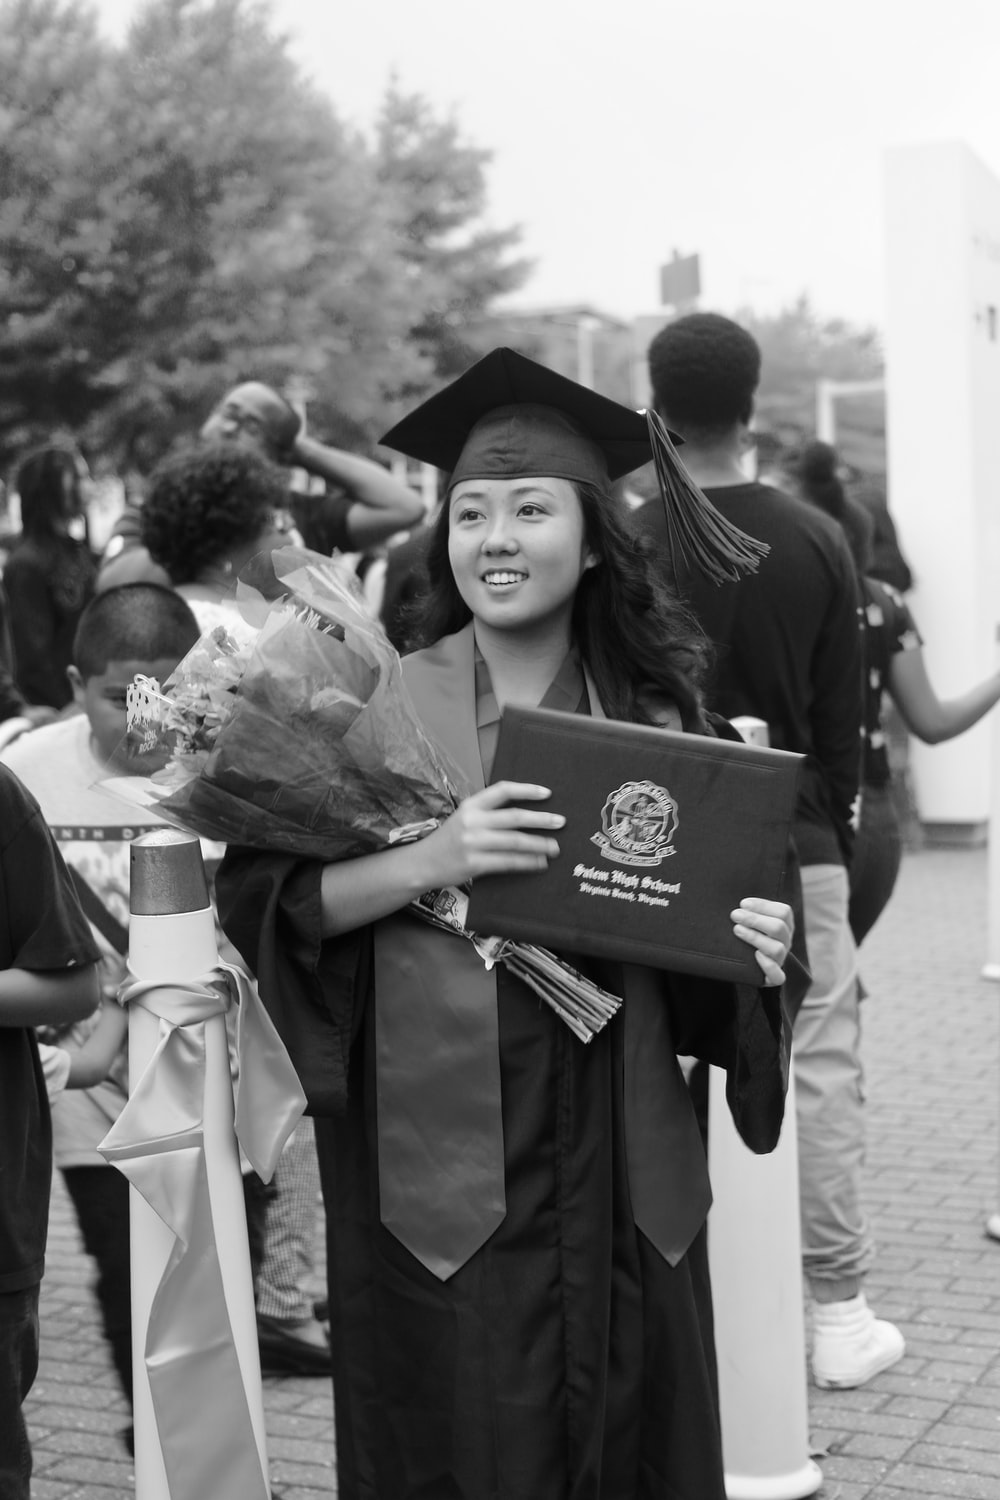 grayscale photo of girl wearing graduation gown